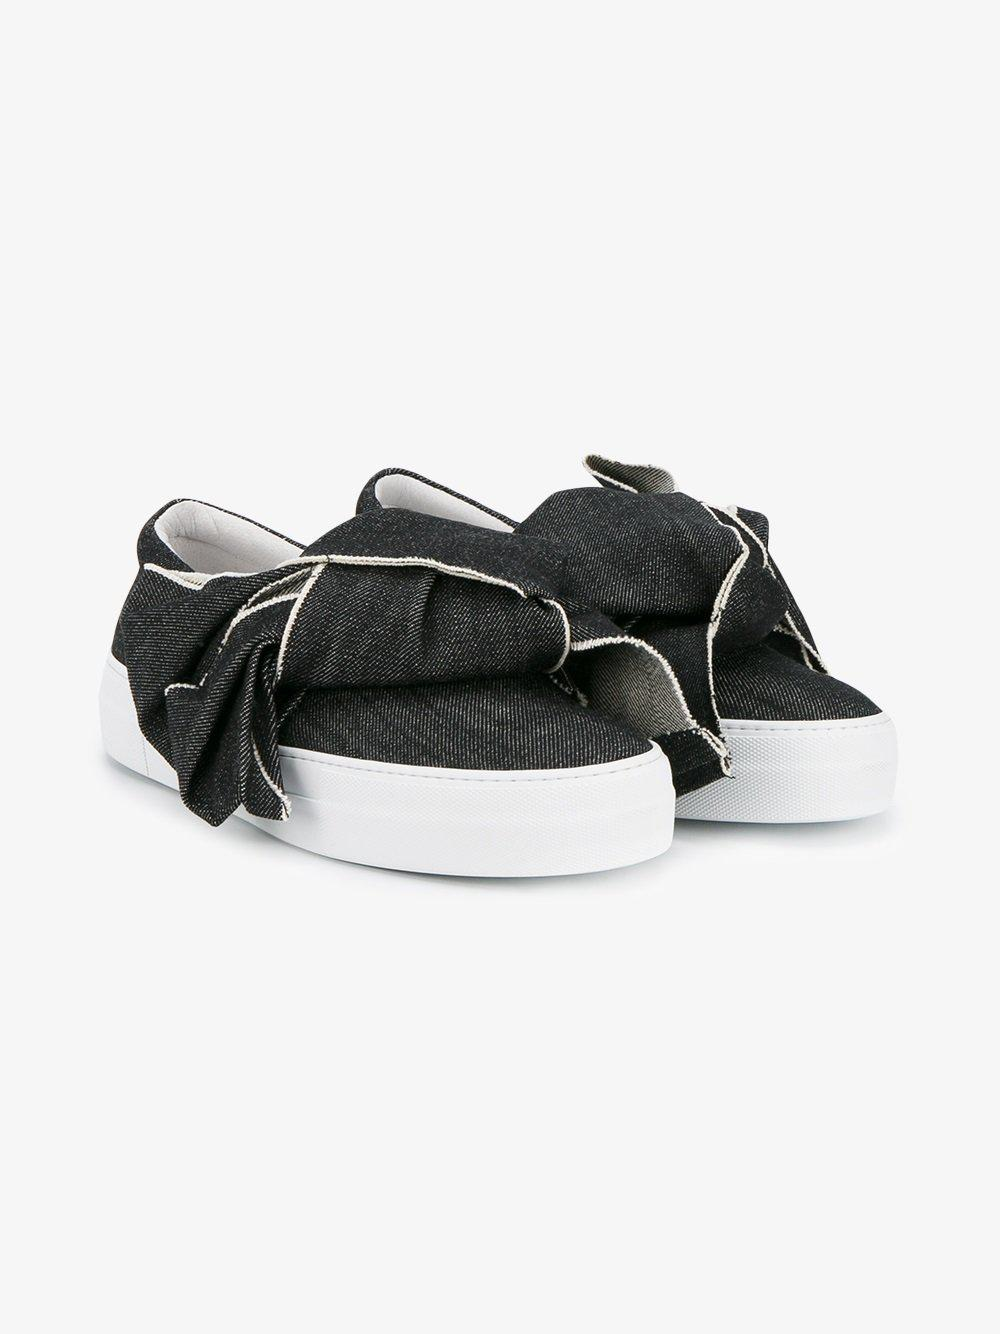 Joshua Sanders Bow Denim Slip-on Sneakers in Black